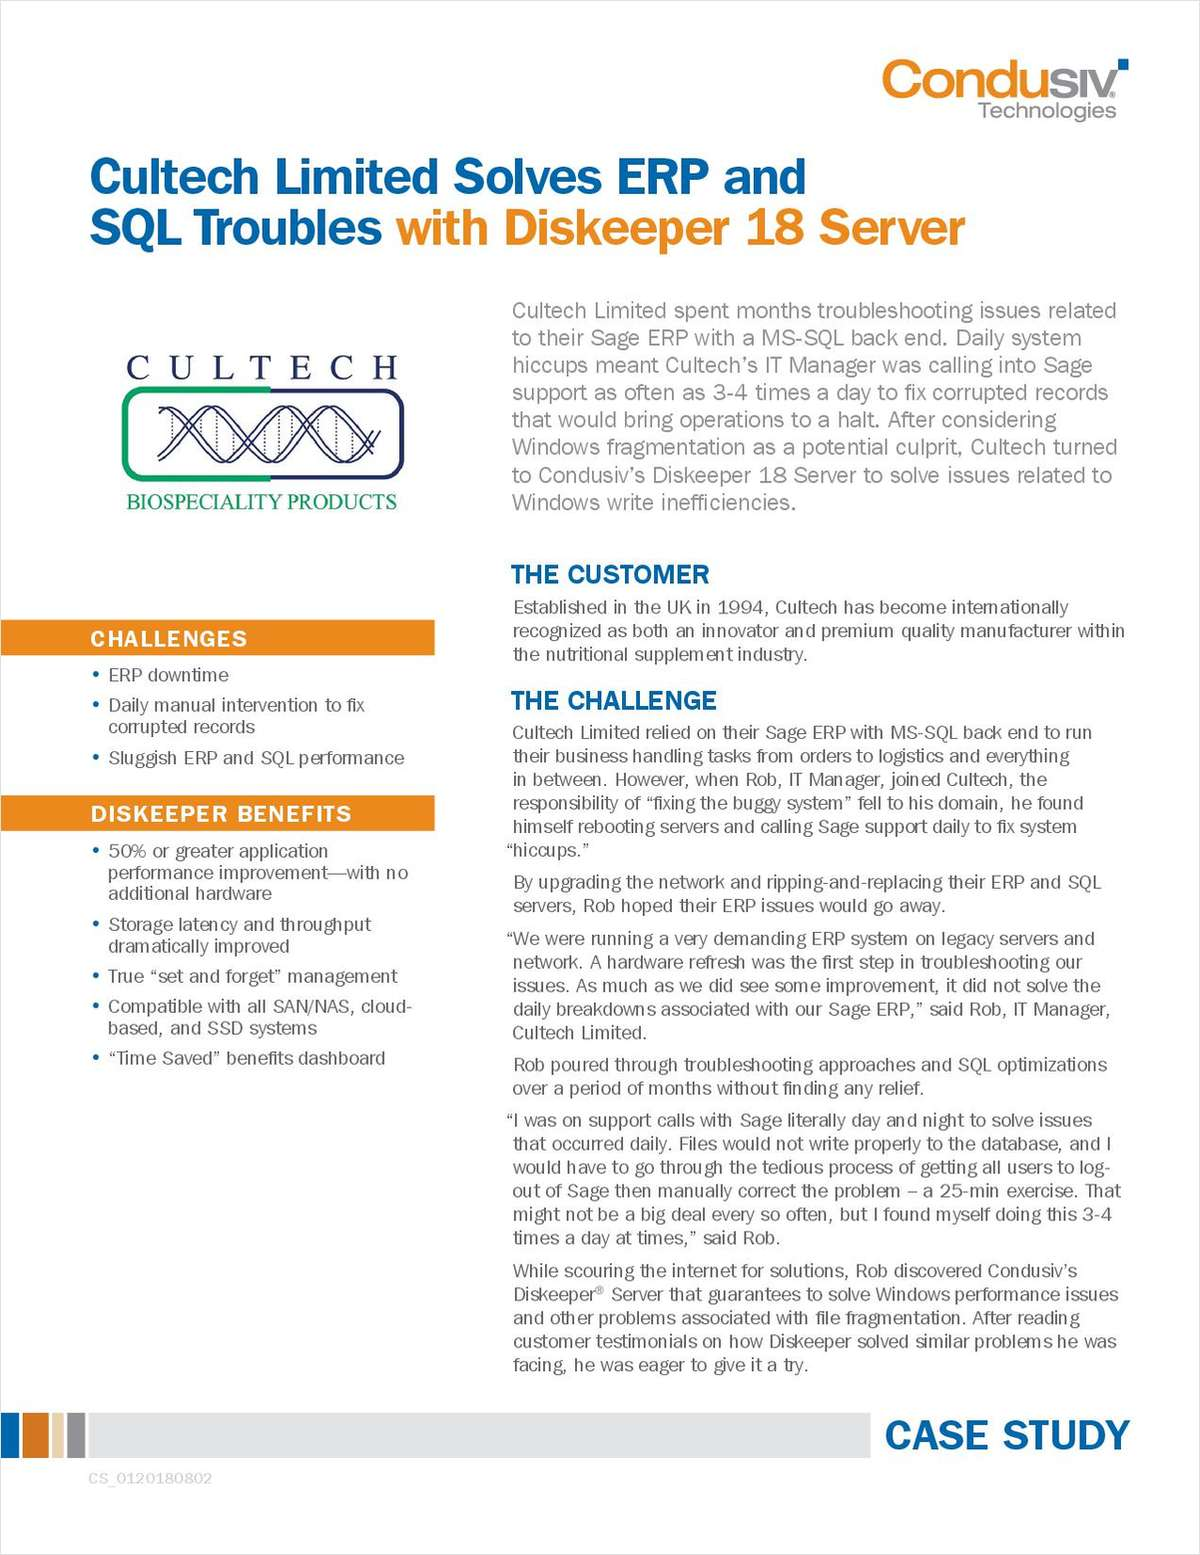 Cultech Limited Solves ERP and SQL Troubles with Diskeeper 18 Server